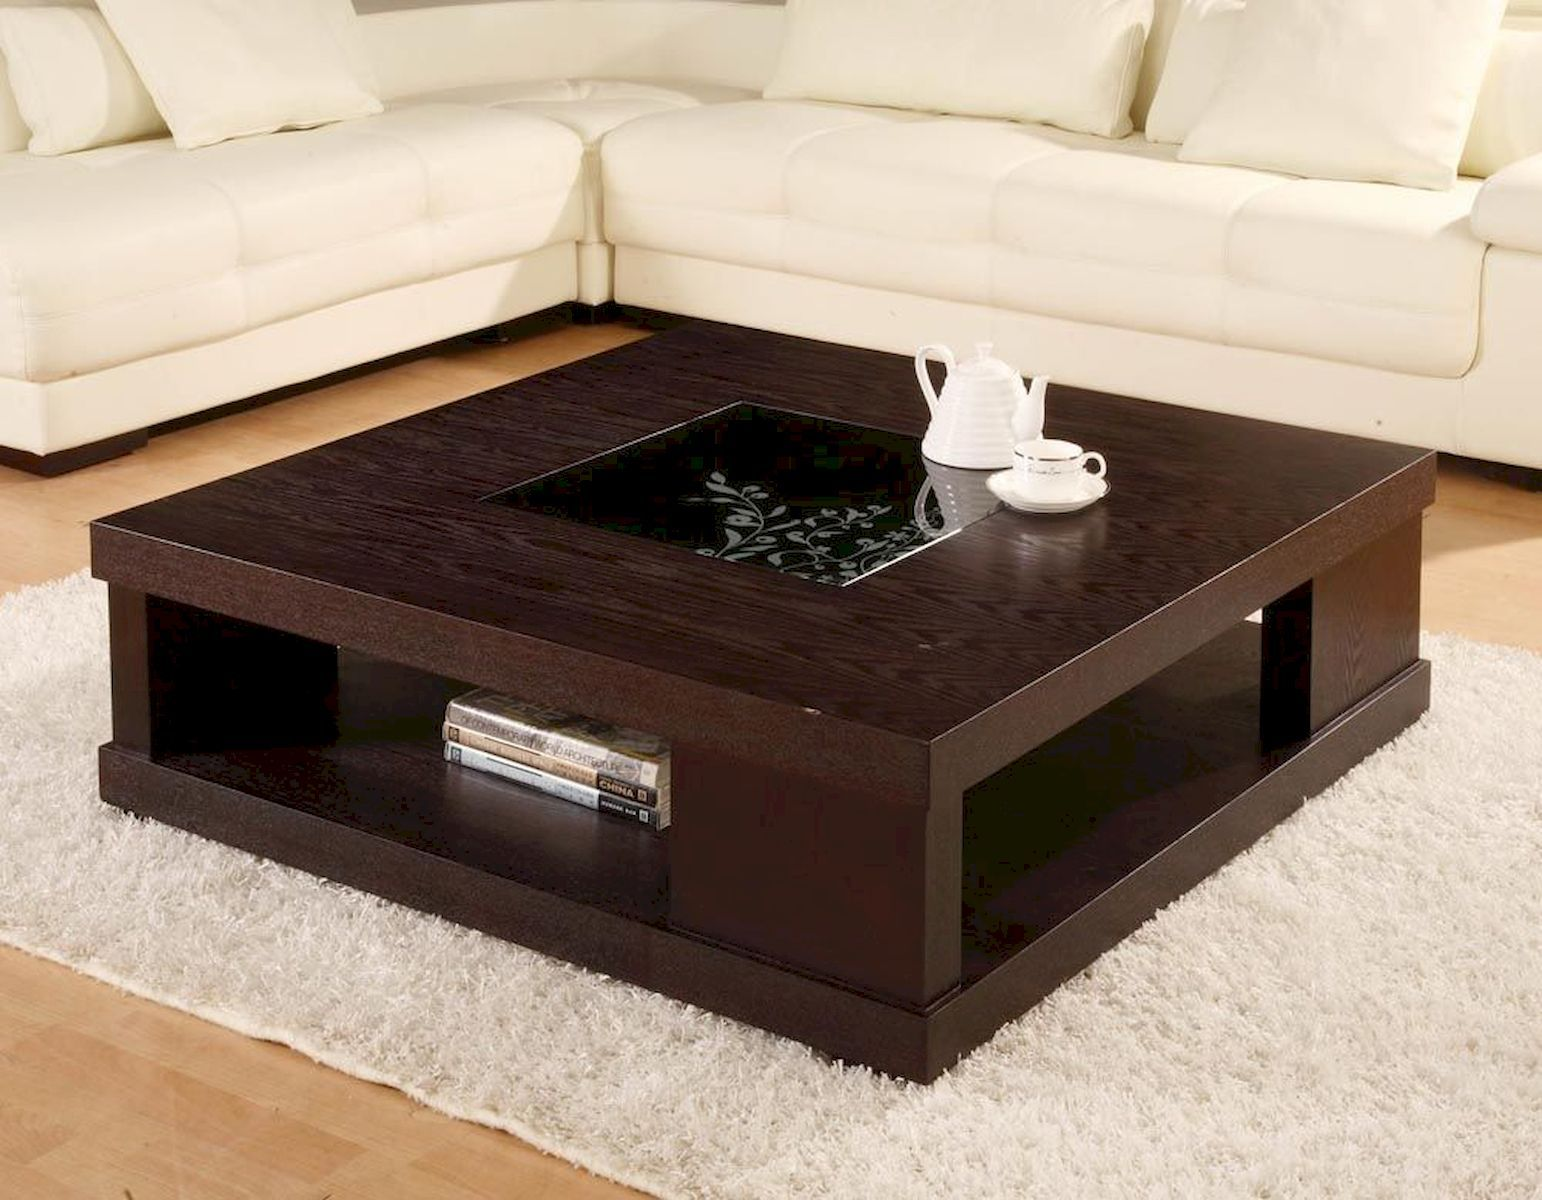 Coffee Table Ideas For Your Living Room Jihanshanum Sofa Table Design Table Decor Living Room Living Room Table Table for the living room